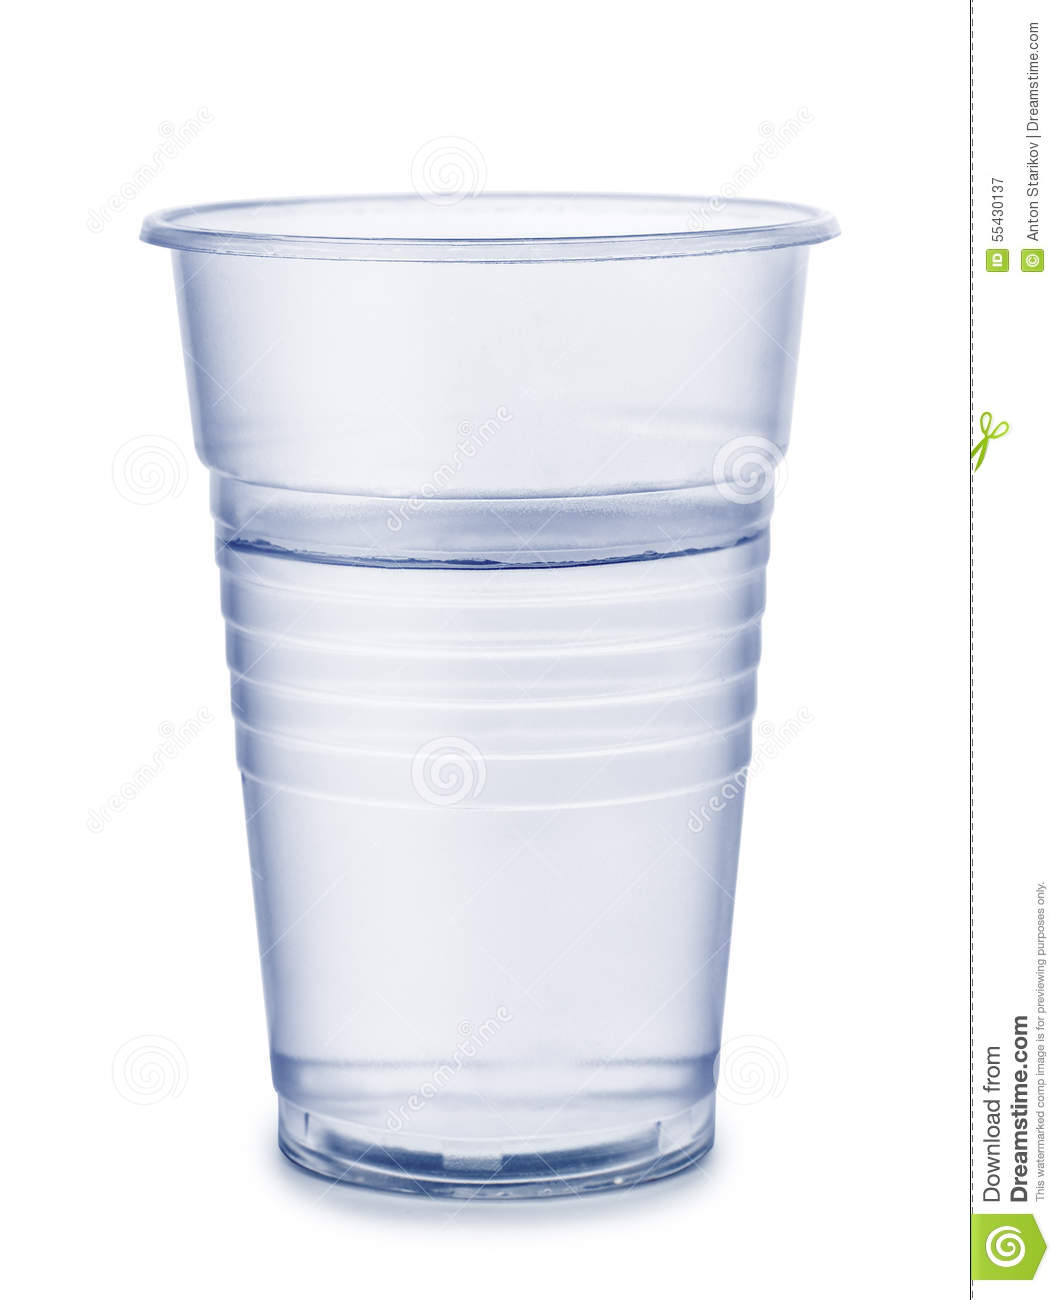 Cup of water stock image. Image of ideas, beverage ...